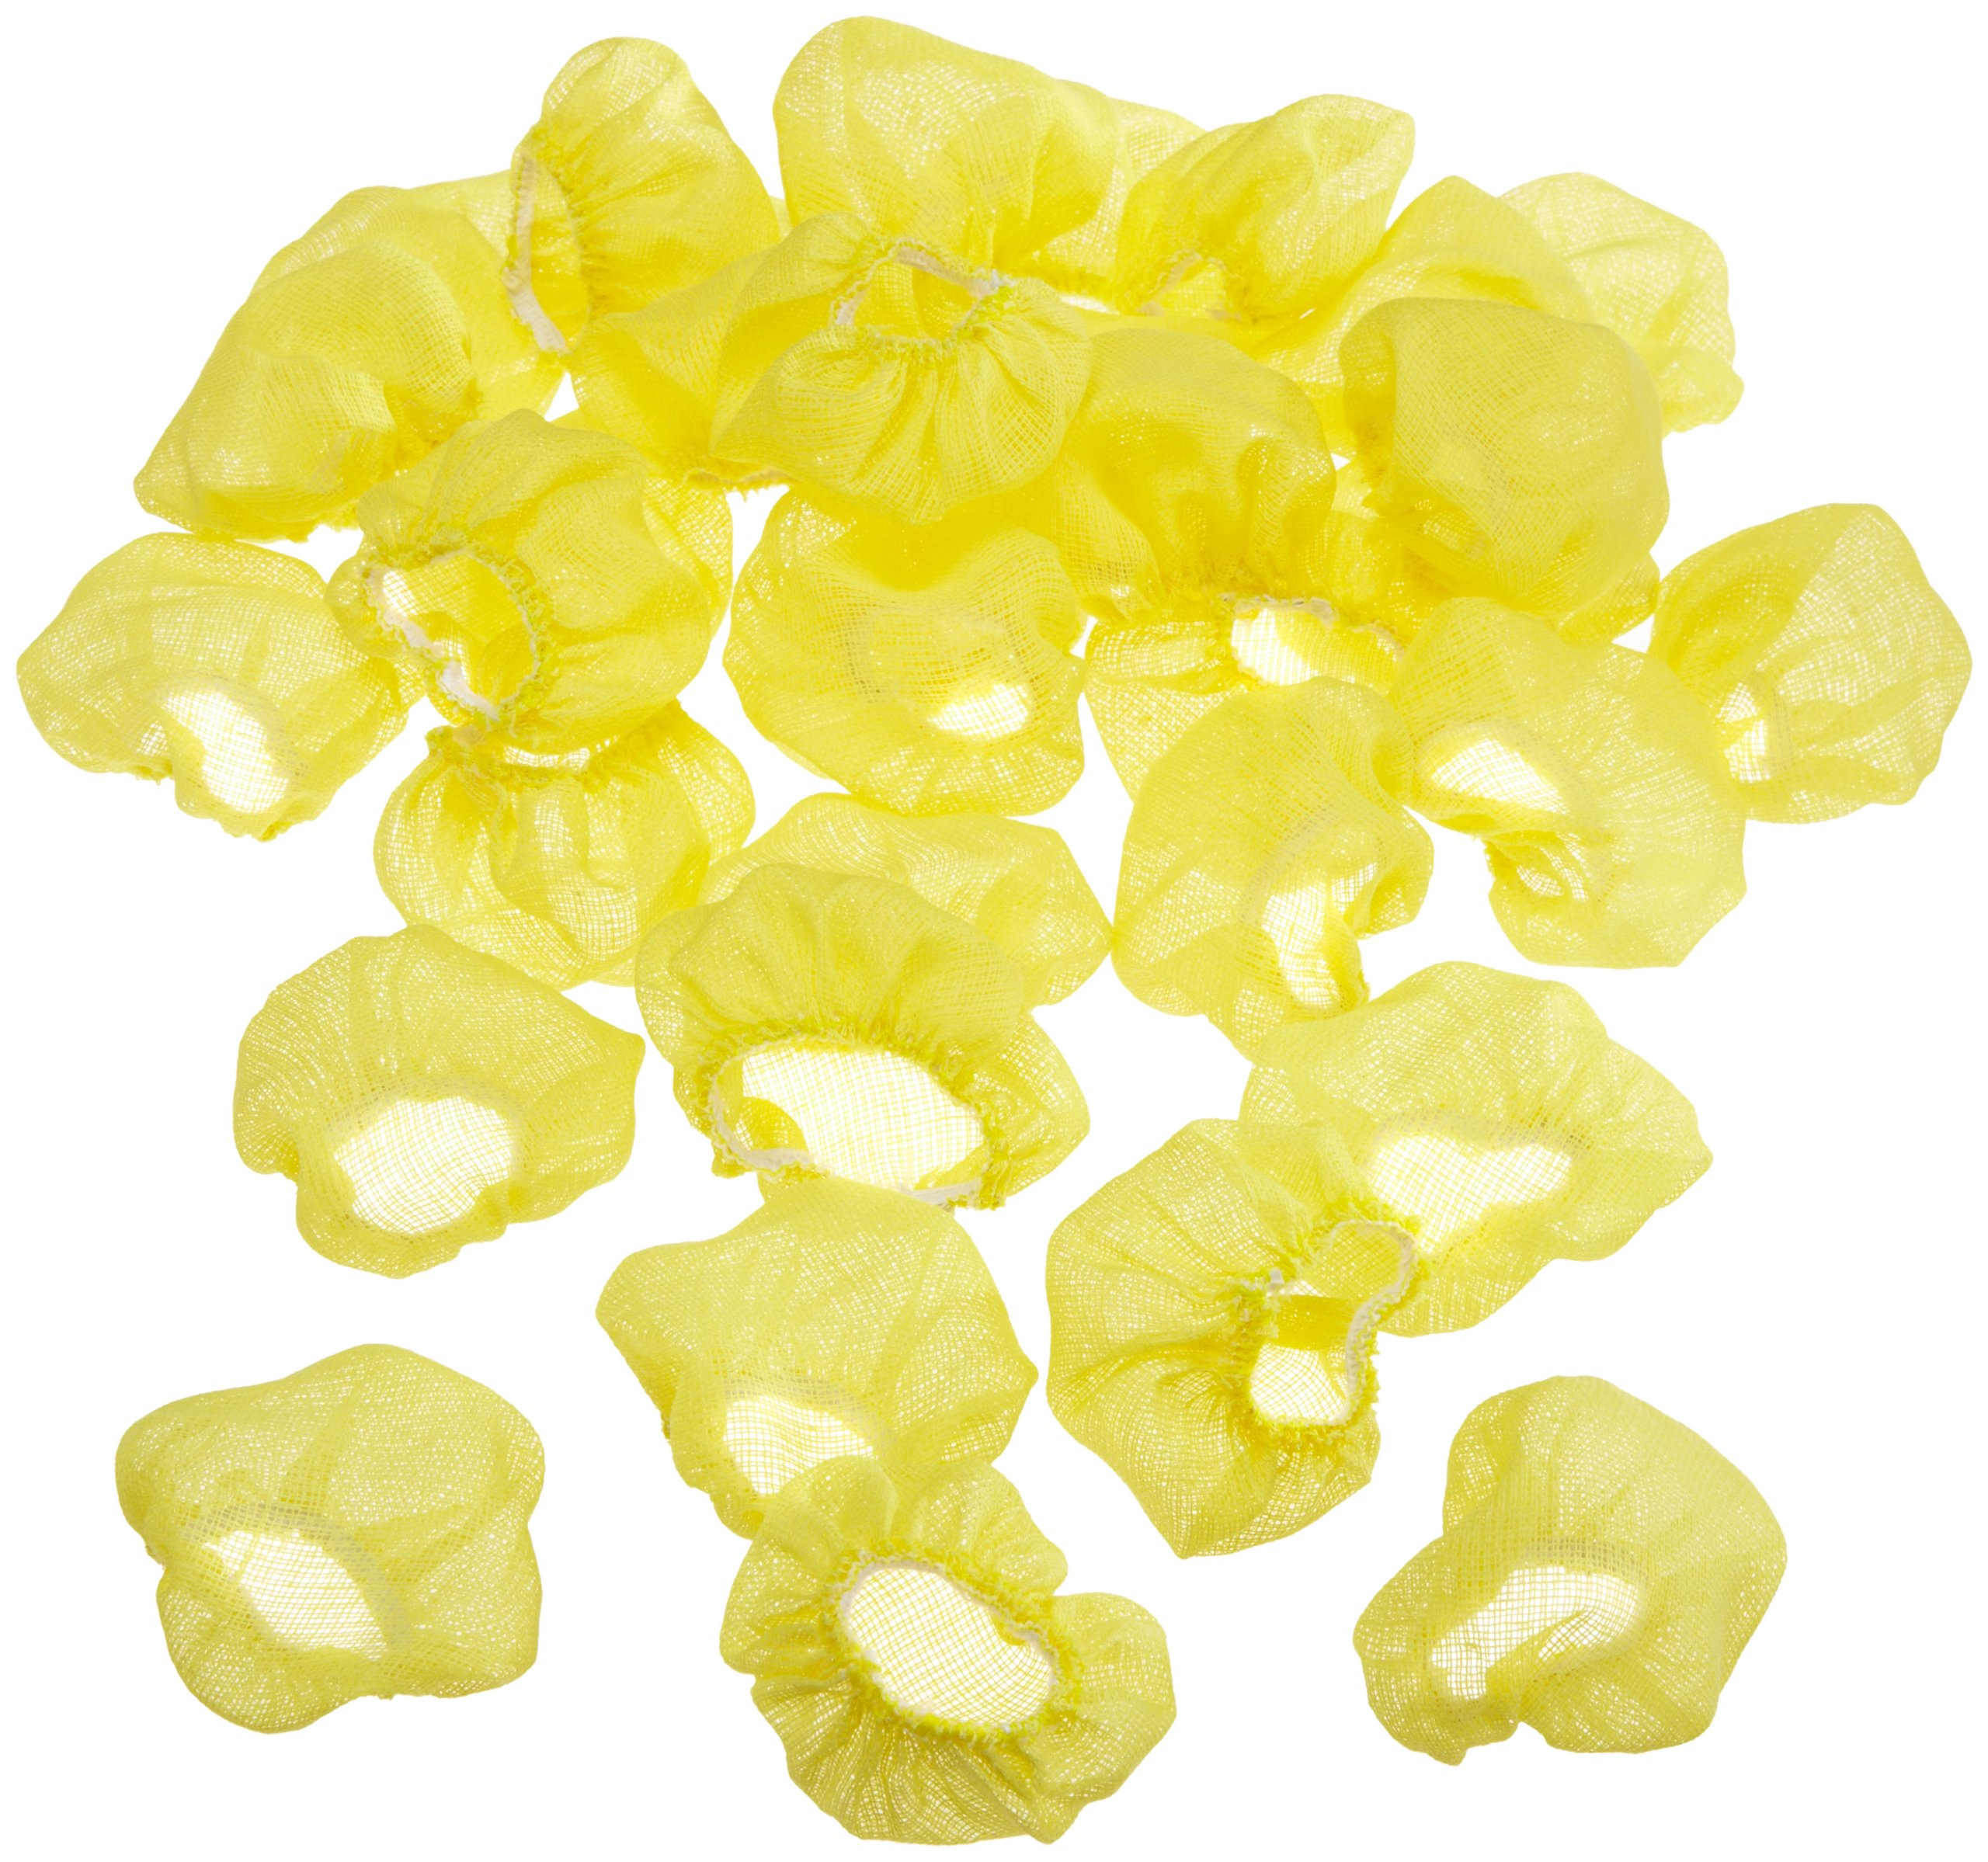 Regency Yellow Stretch Wraps for Lemon Halves and wedges bag of 100